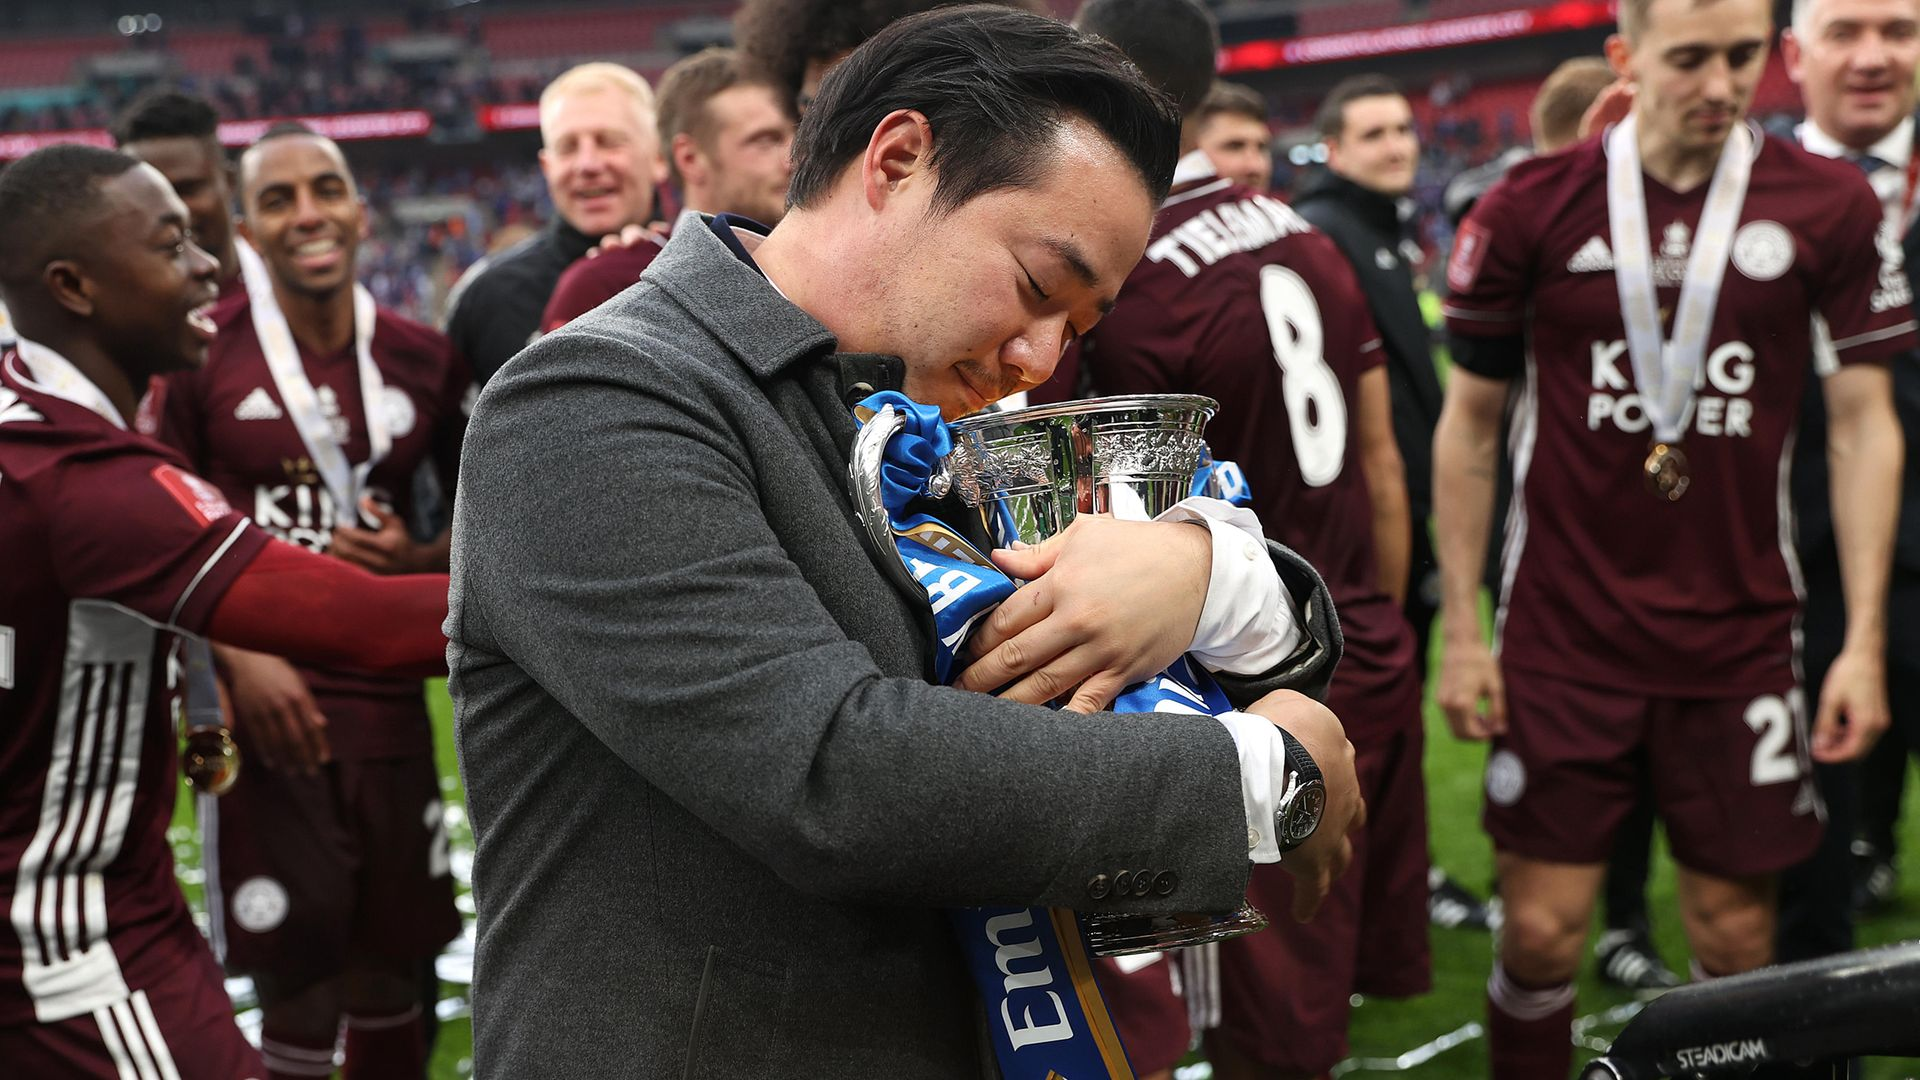 Aiyawatt Srivaddhanaprabha, aka Khun Top, chairman of Leicester City celebrates with the Emirates FA Cup trophy on May 15, 2021 - Credit: Photo by Eddie Keogh - The FA/The FA via Getty Images